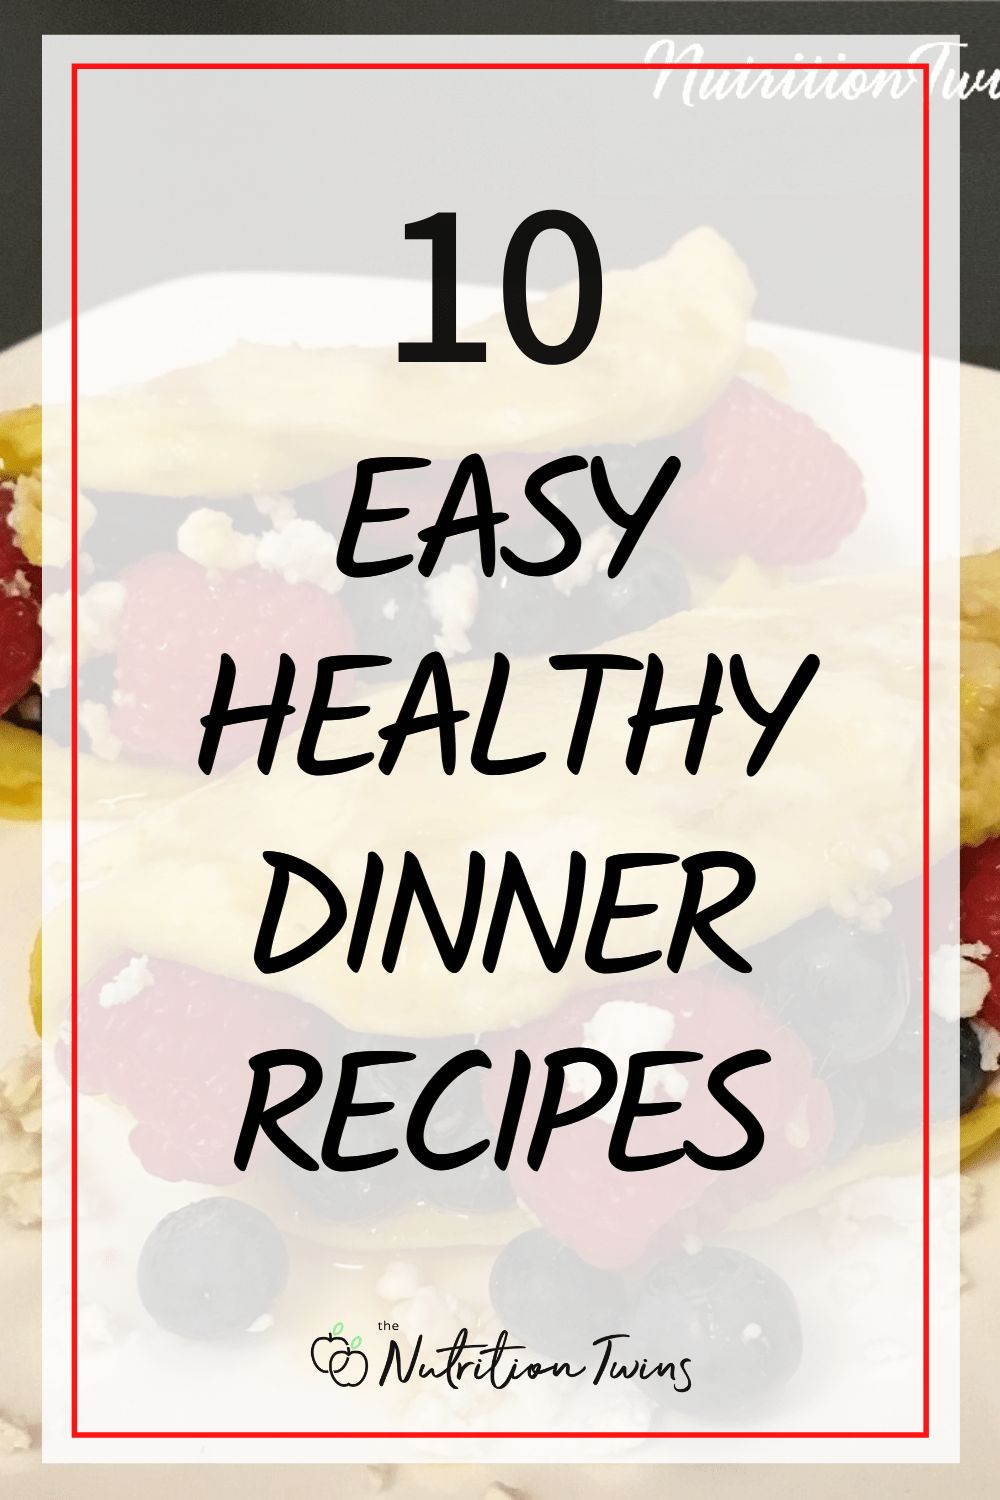 10 Easy Healthy Dinner Recipes. Meal prep for clean eating is simple with these easy healthy recipes. They're perfect for your flat belly workout plan because they'll help you lose weight. #weightlossrecipes #healthyrecipes #mealprep For MORE RECIPES, fitness & nutrition tips please SIGN UP for our FREE NEWSLETTER www.NutritionTwins.com